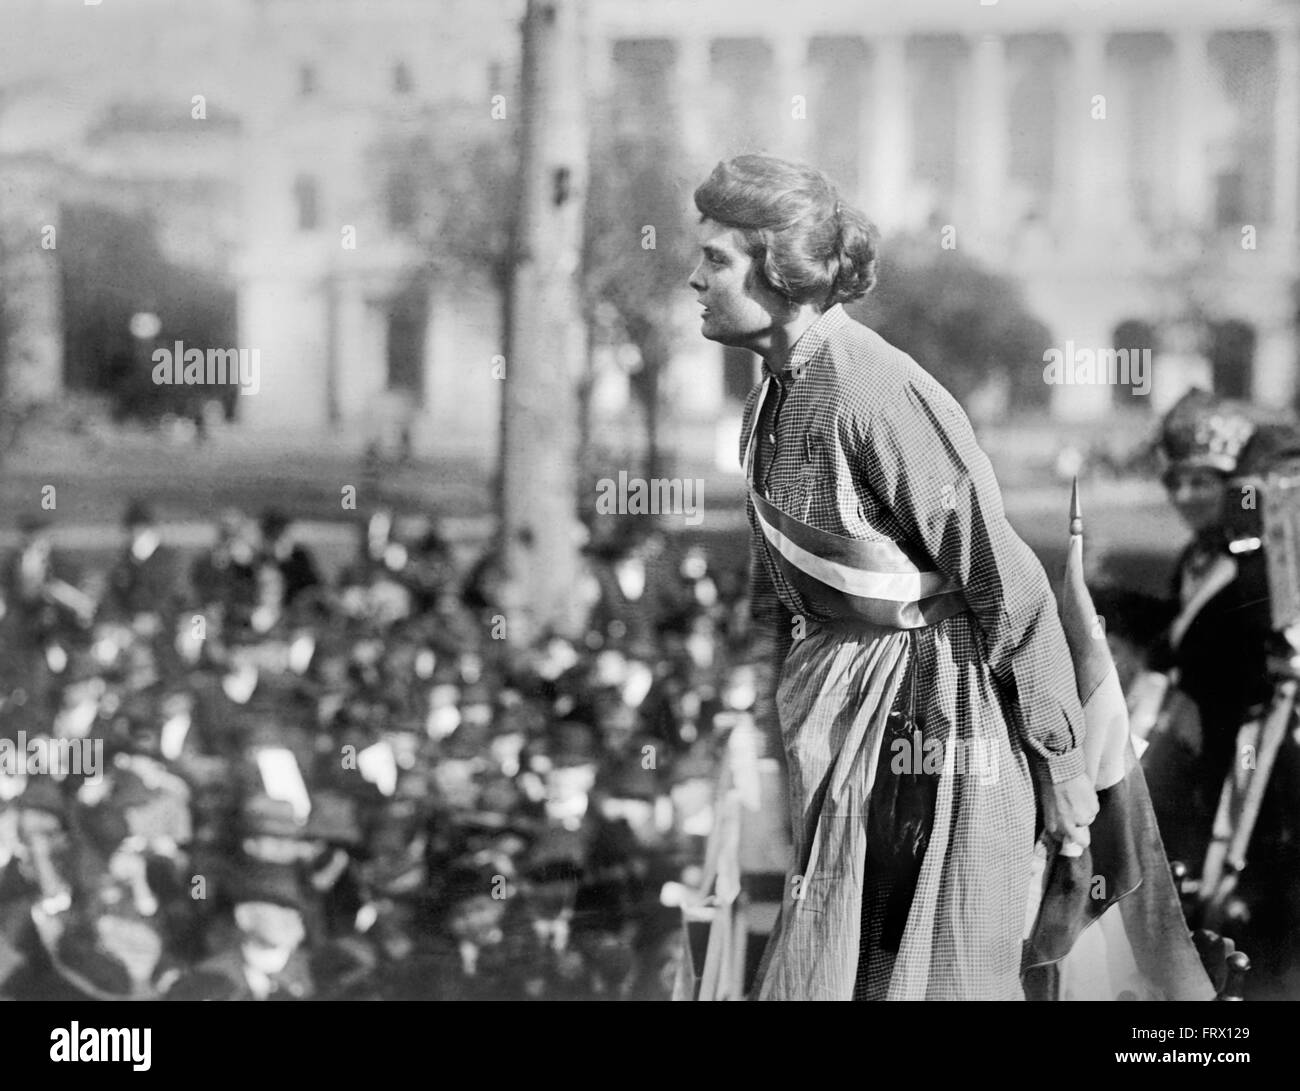 Lucy Gwynne Branham, an American suffragette and organizer for the National Women's Party, speaking at a rally - Stock Image